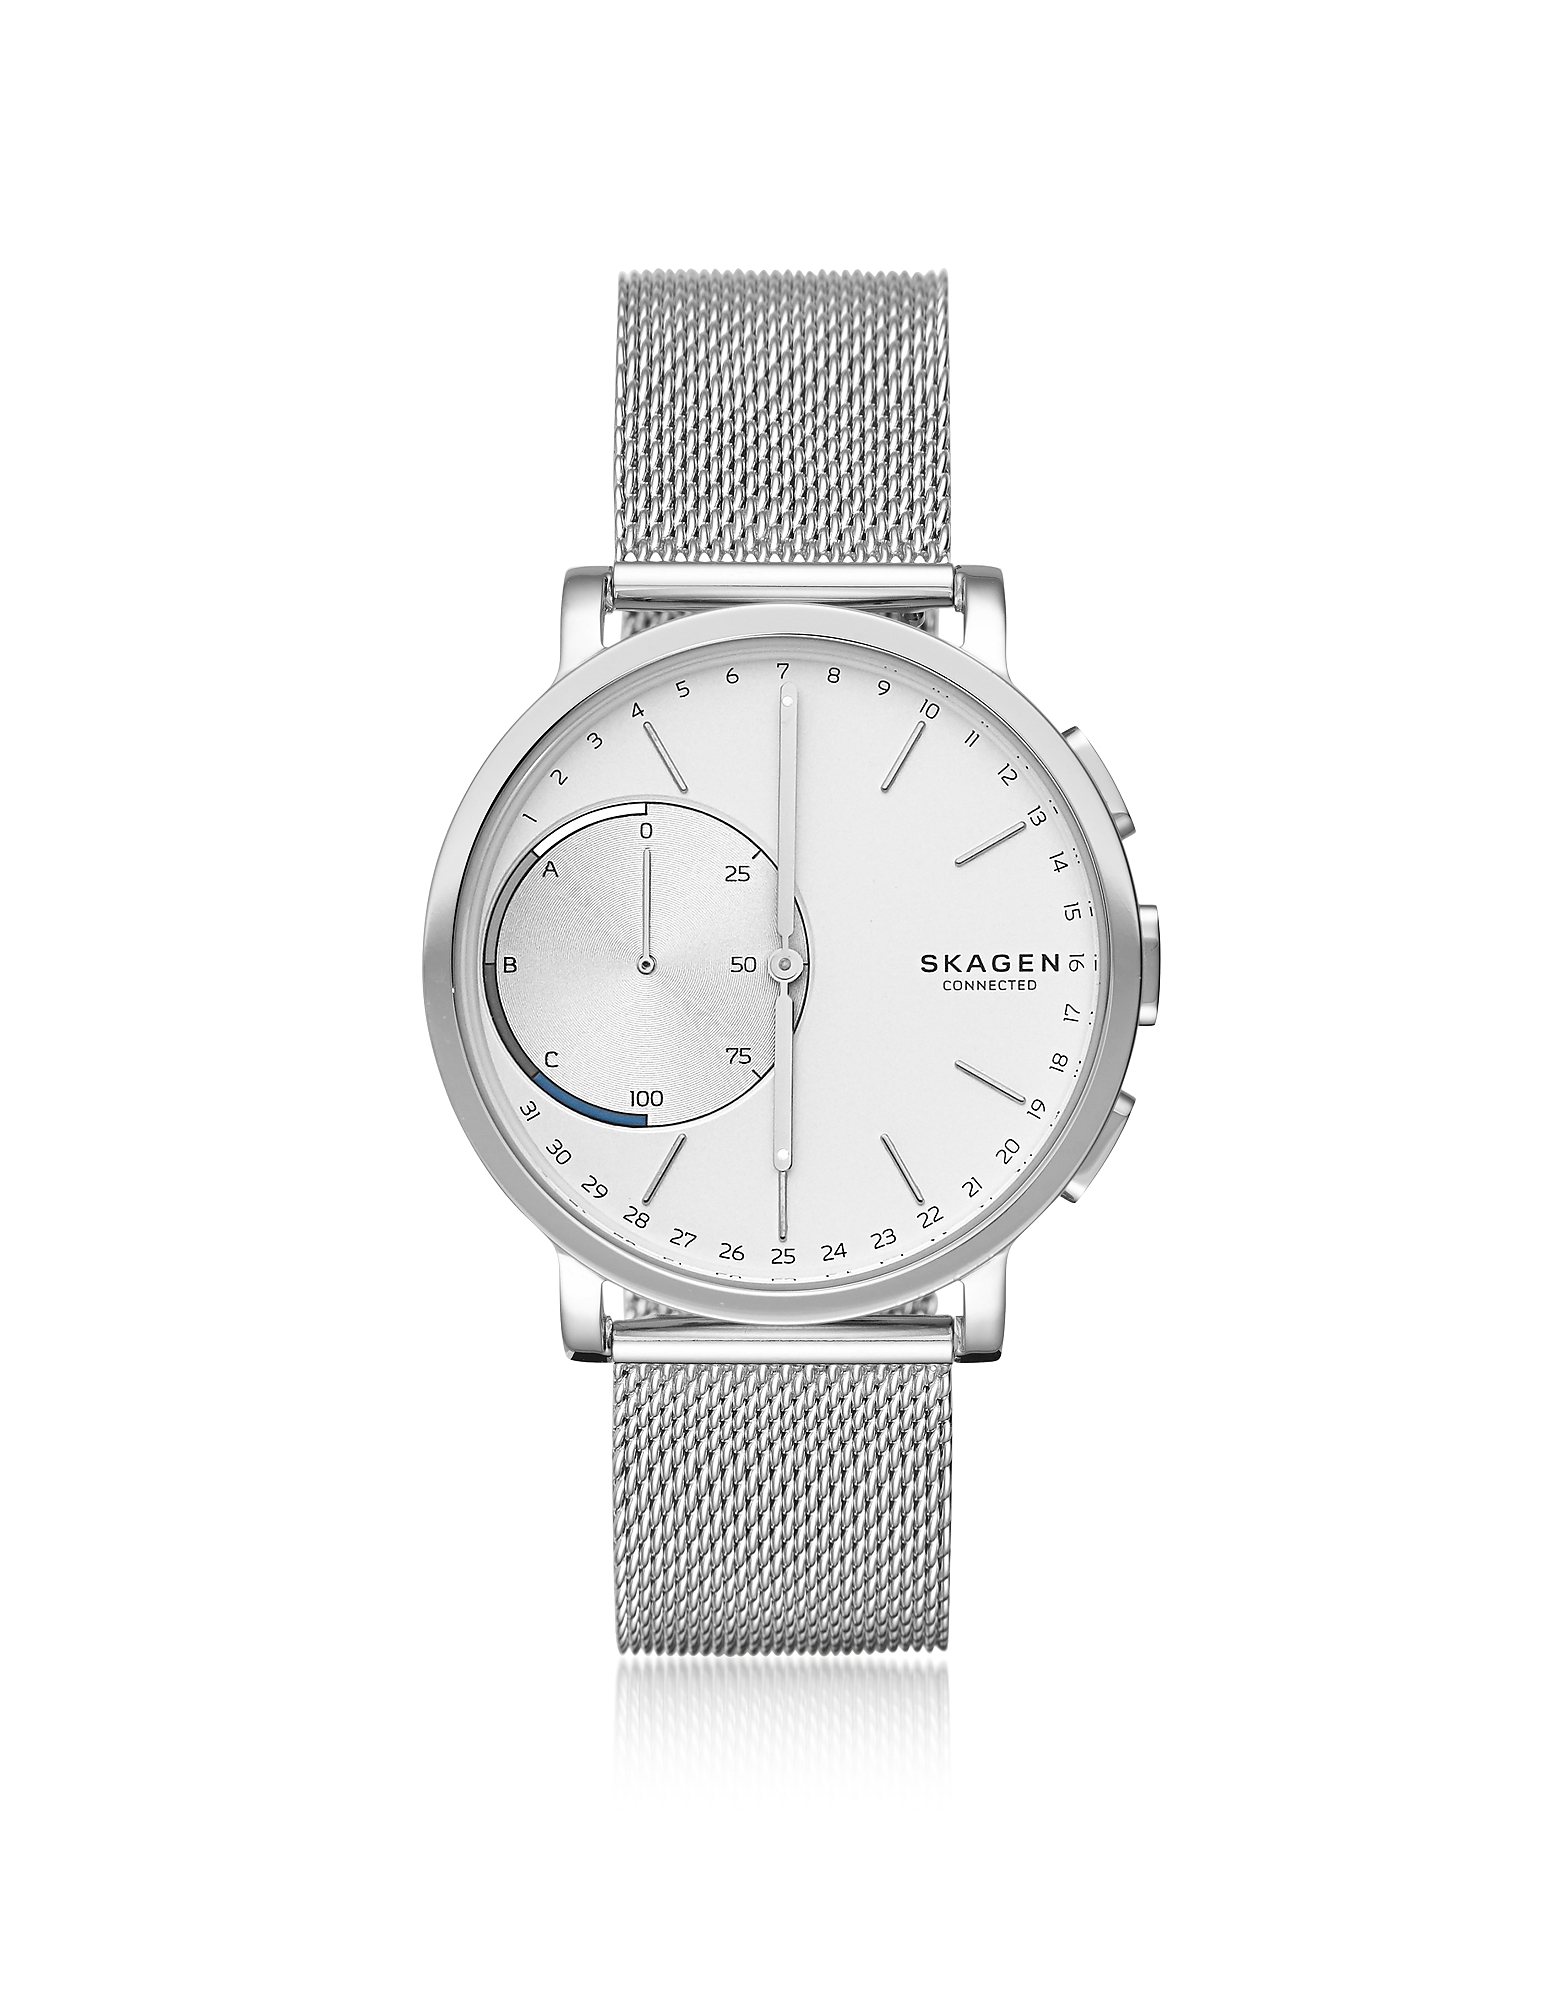 inflow inflowcomponent p watches no technicalissues watch ladies ebay content global res skagen leather hagen item s